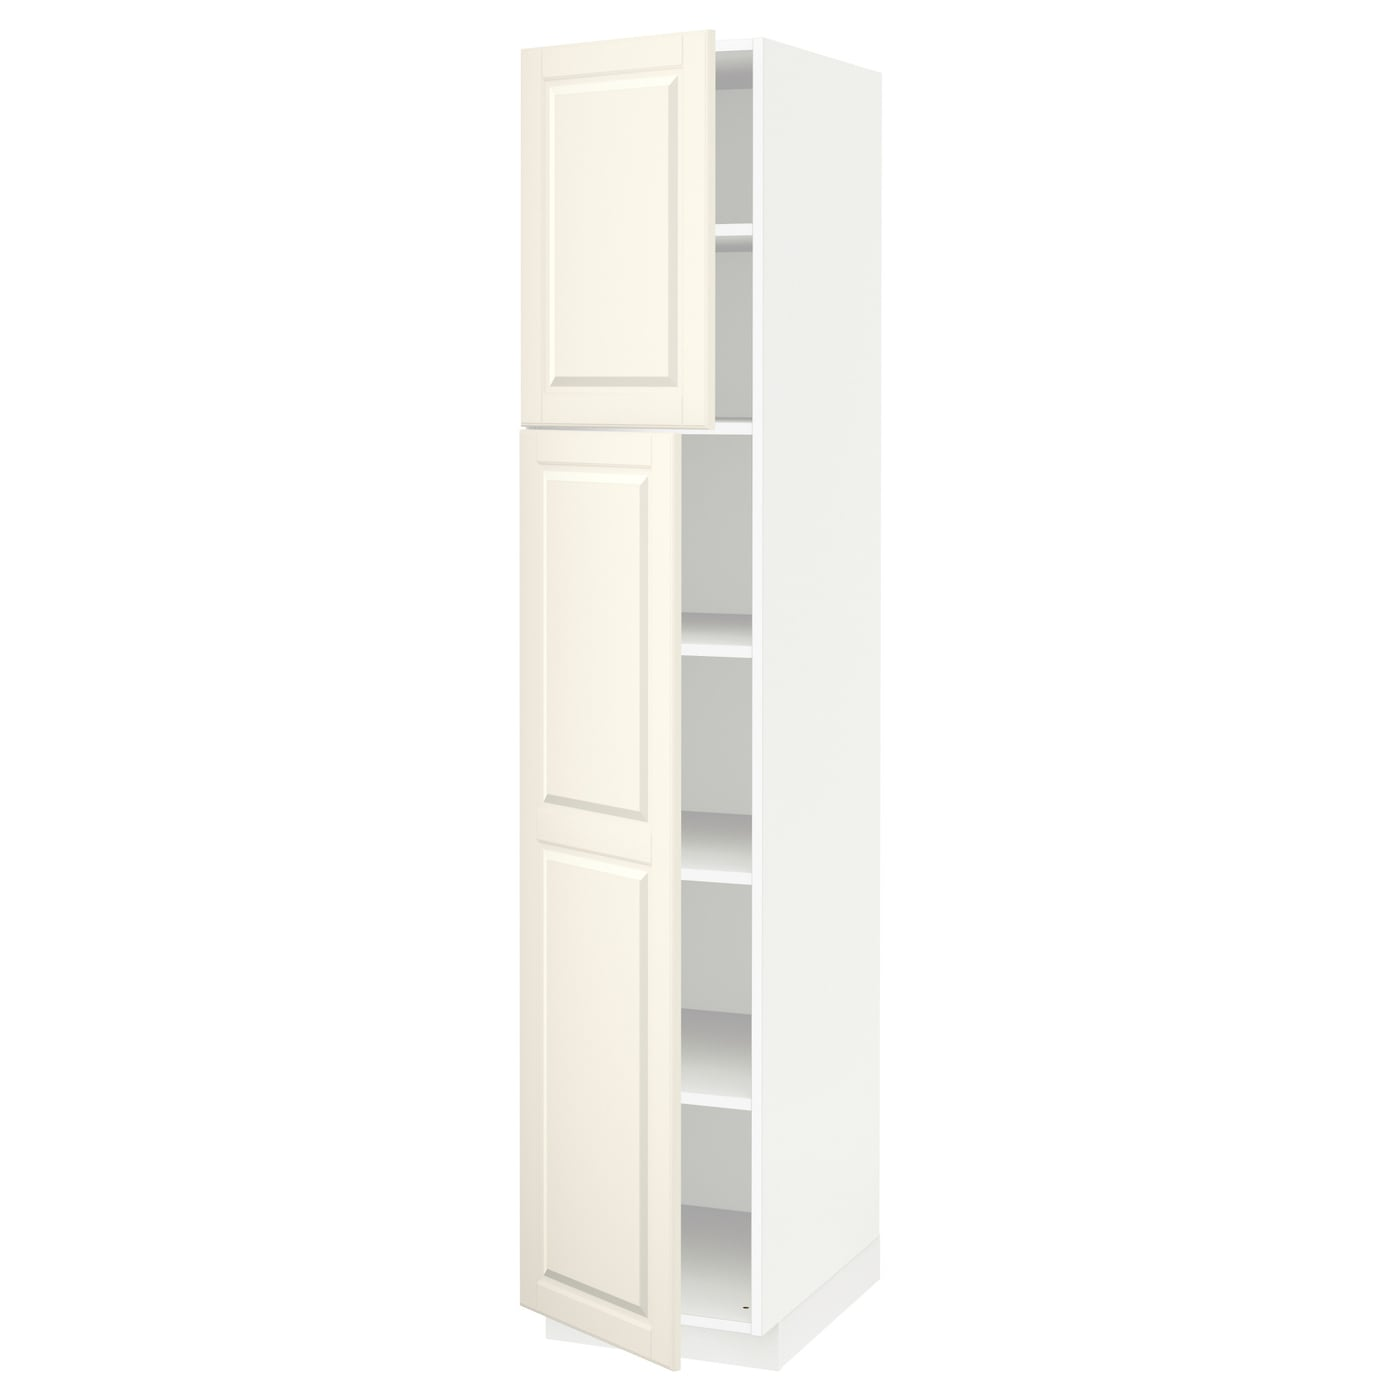 metod high cabinet with shelves 2 doors white bodbyn off. Black Bedroom Furniture Sets. Home Design Ideas